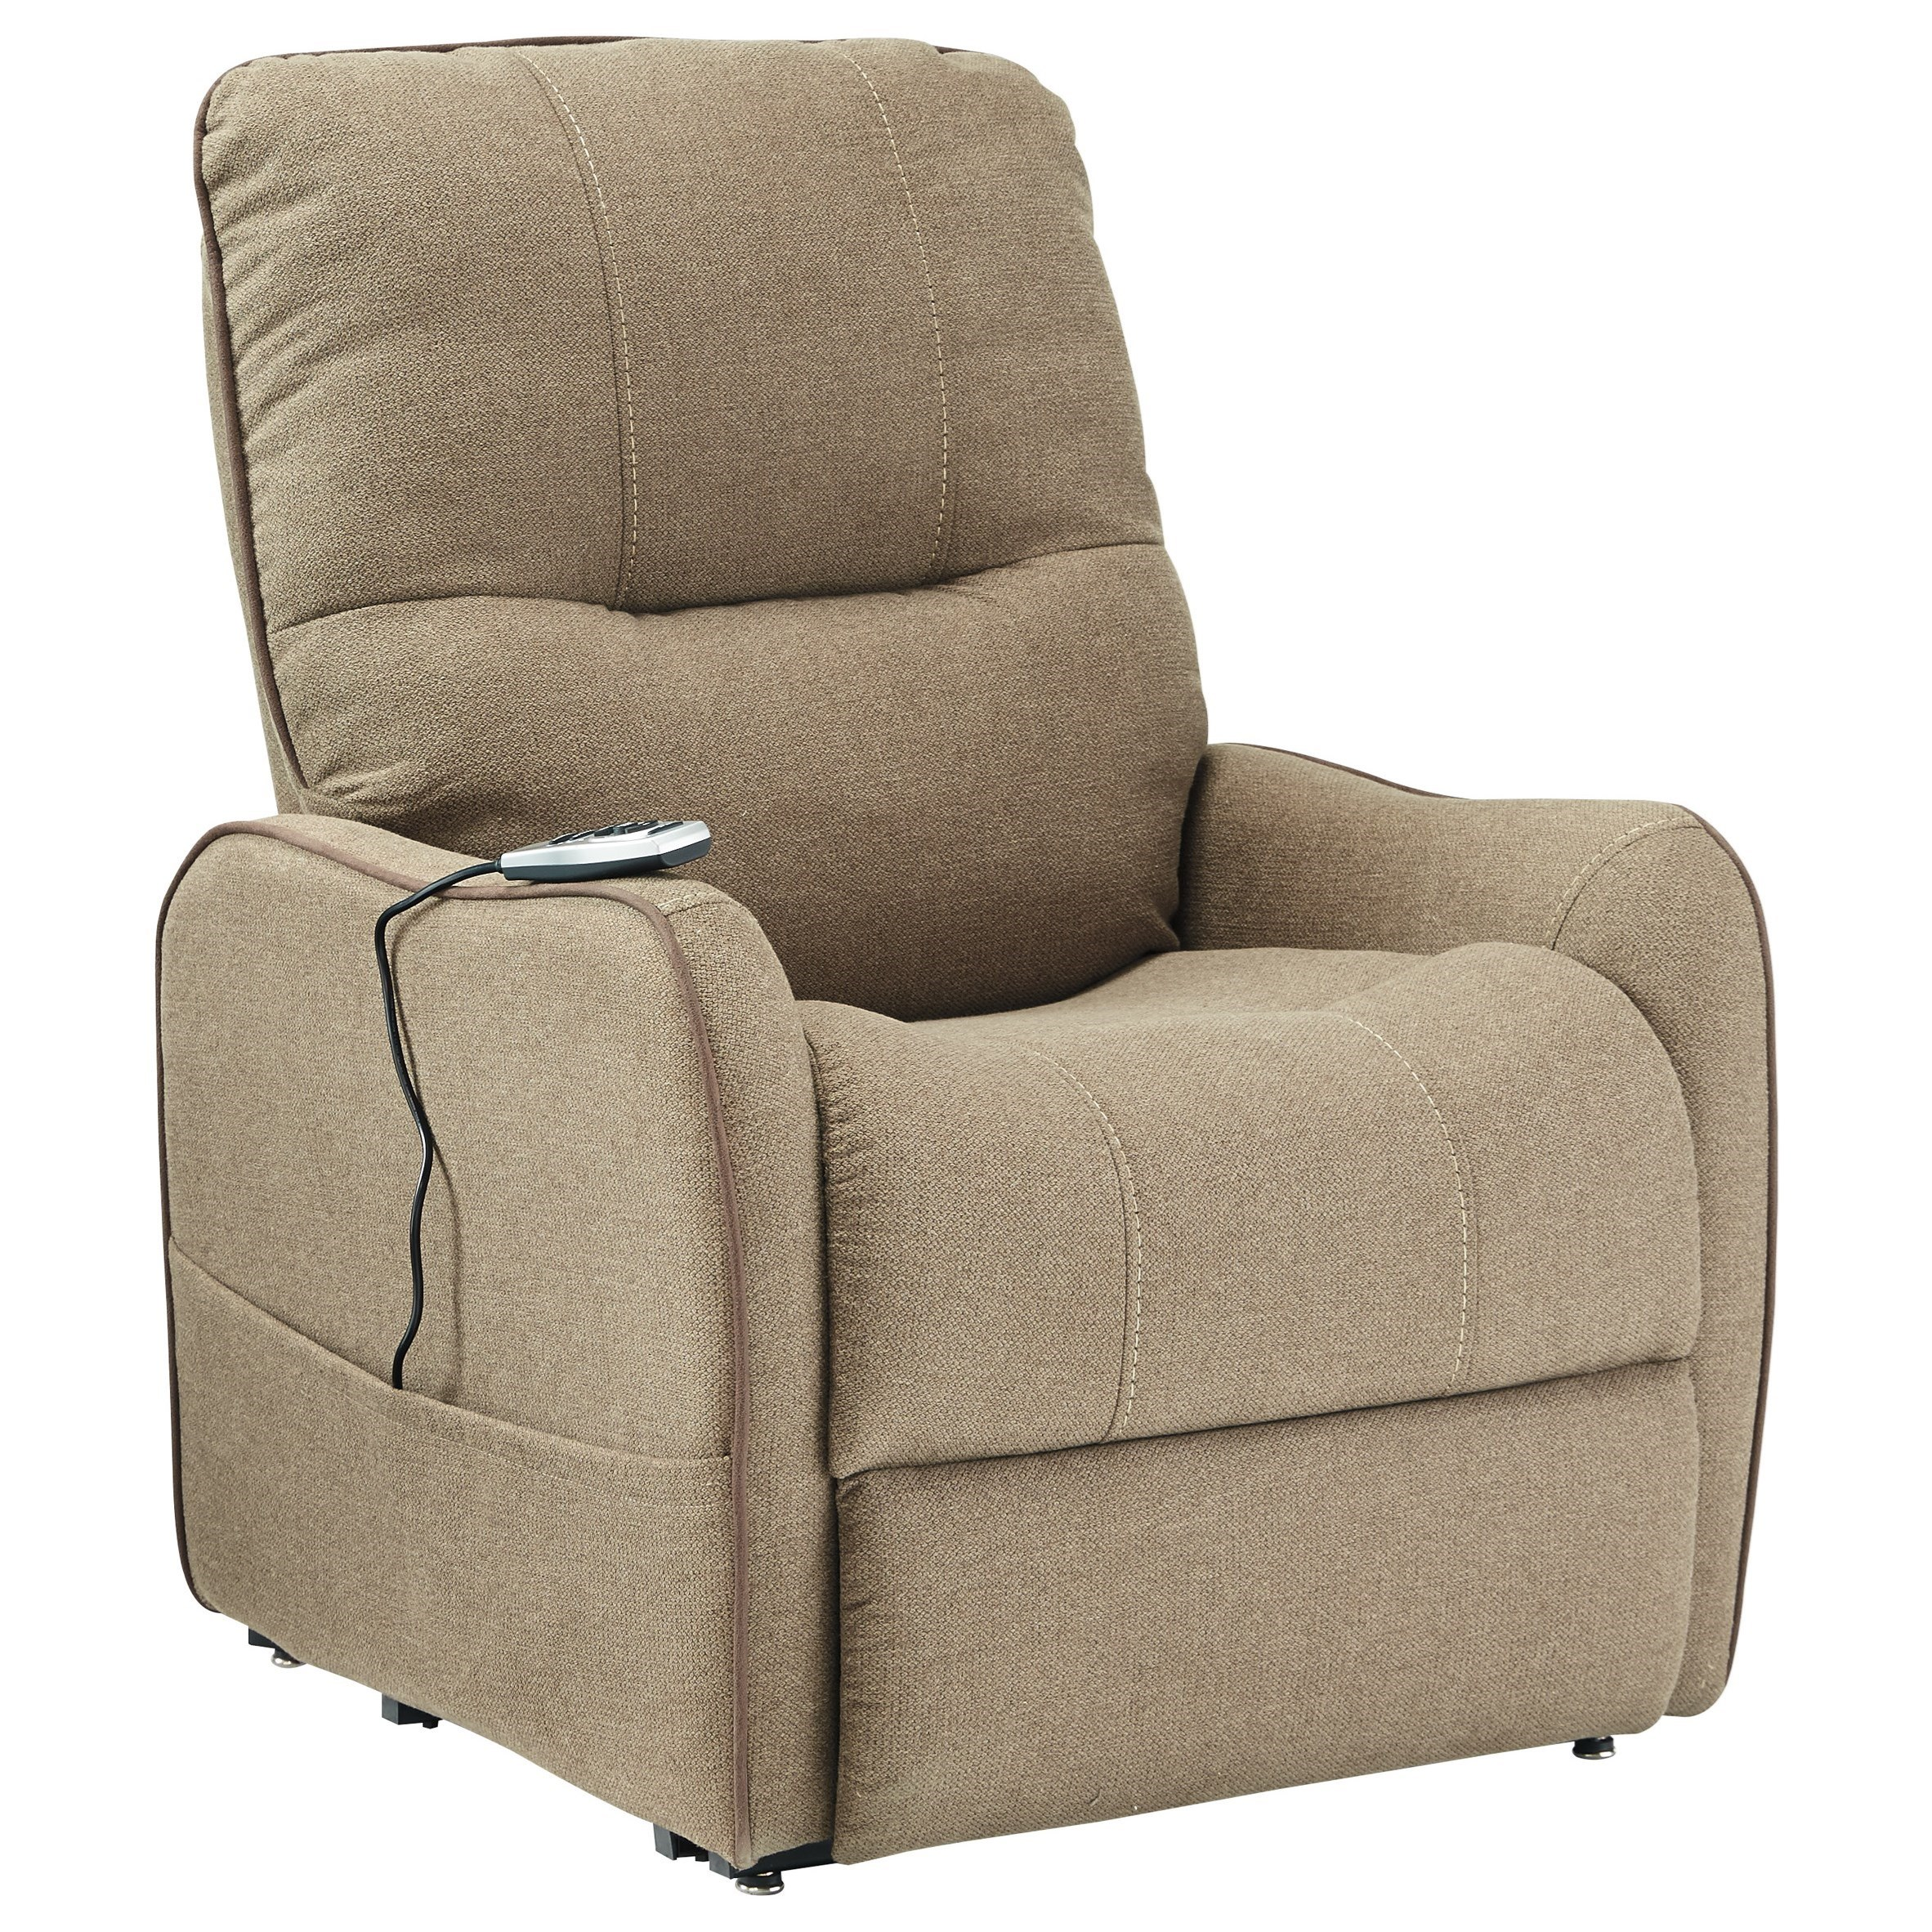 Signature Design by Ashley Enjoy Power Lift Recliner - Item Number: 2190212